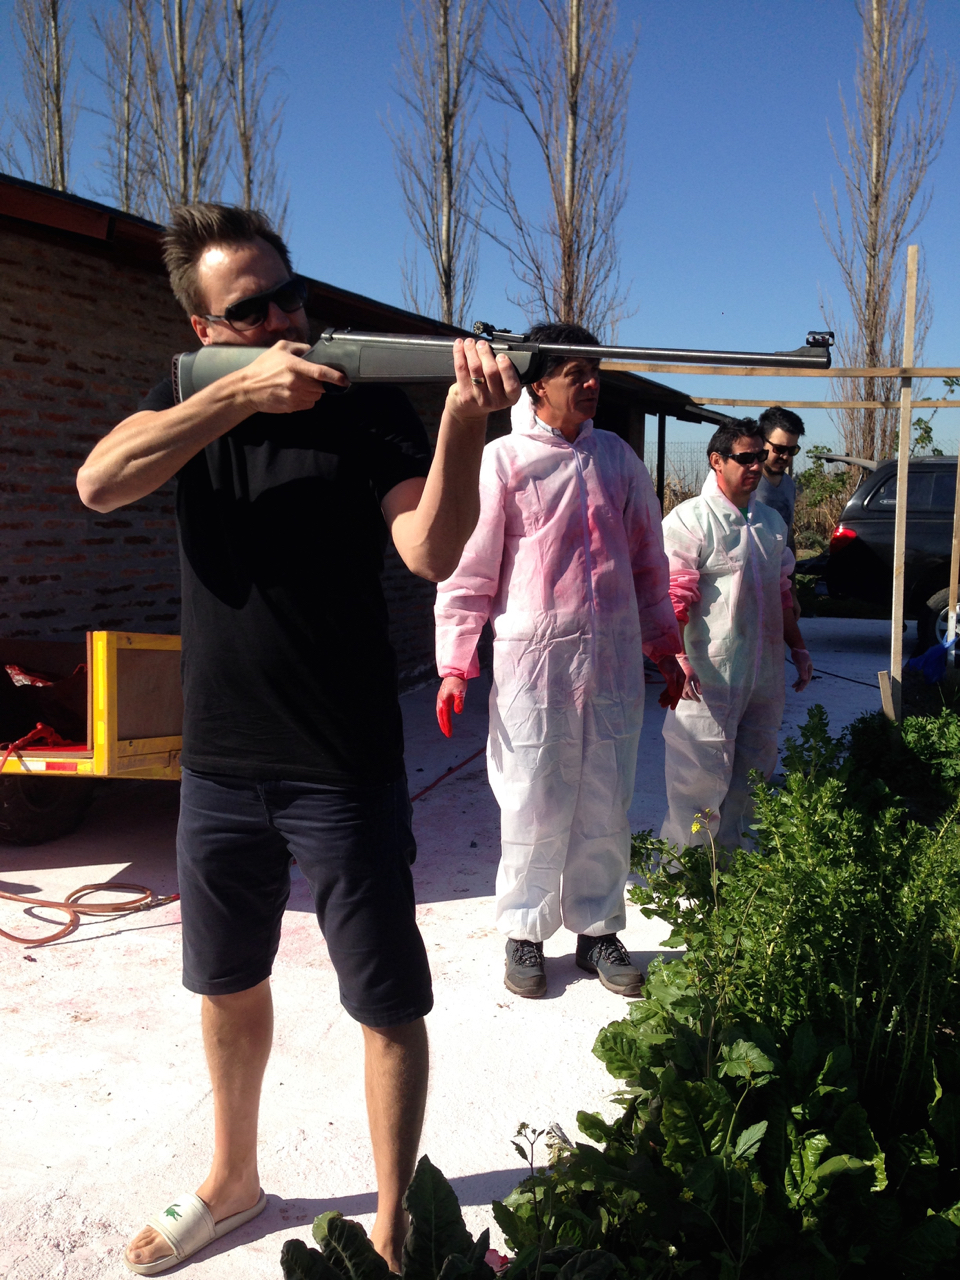 Director Mark Zibert tests some possible special FX with an air gun.